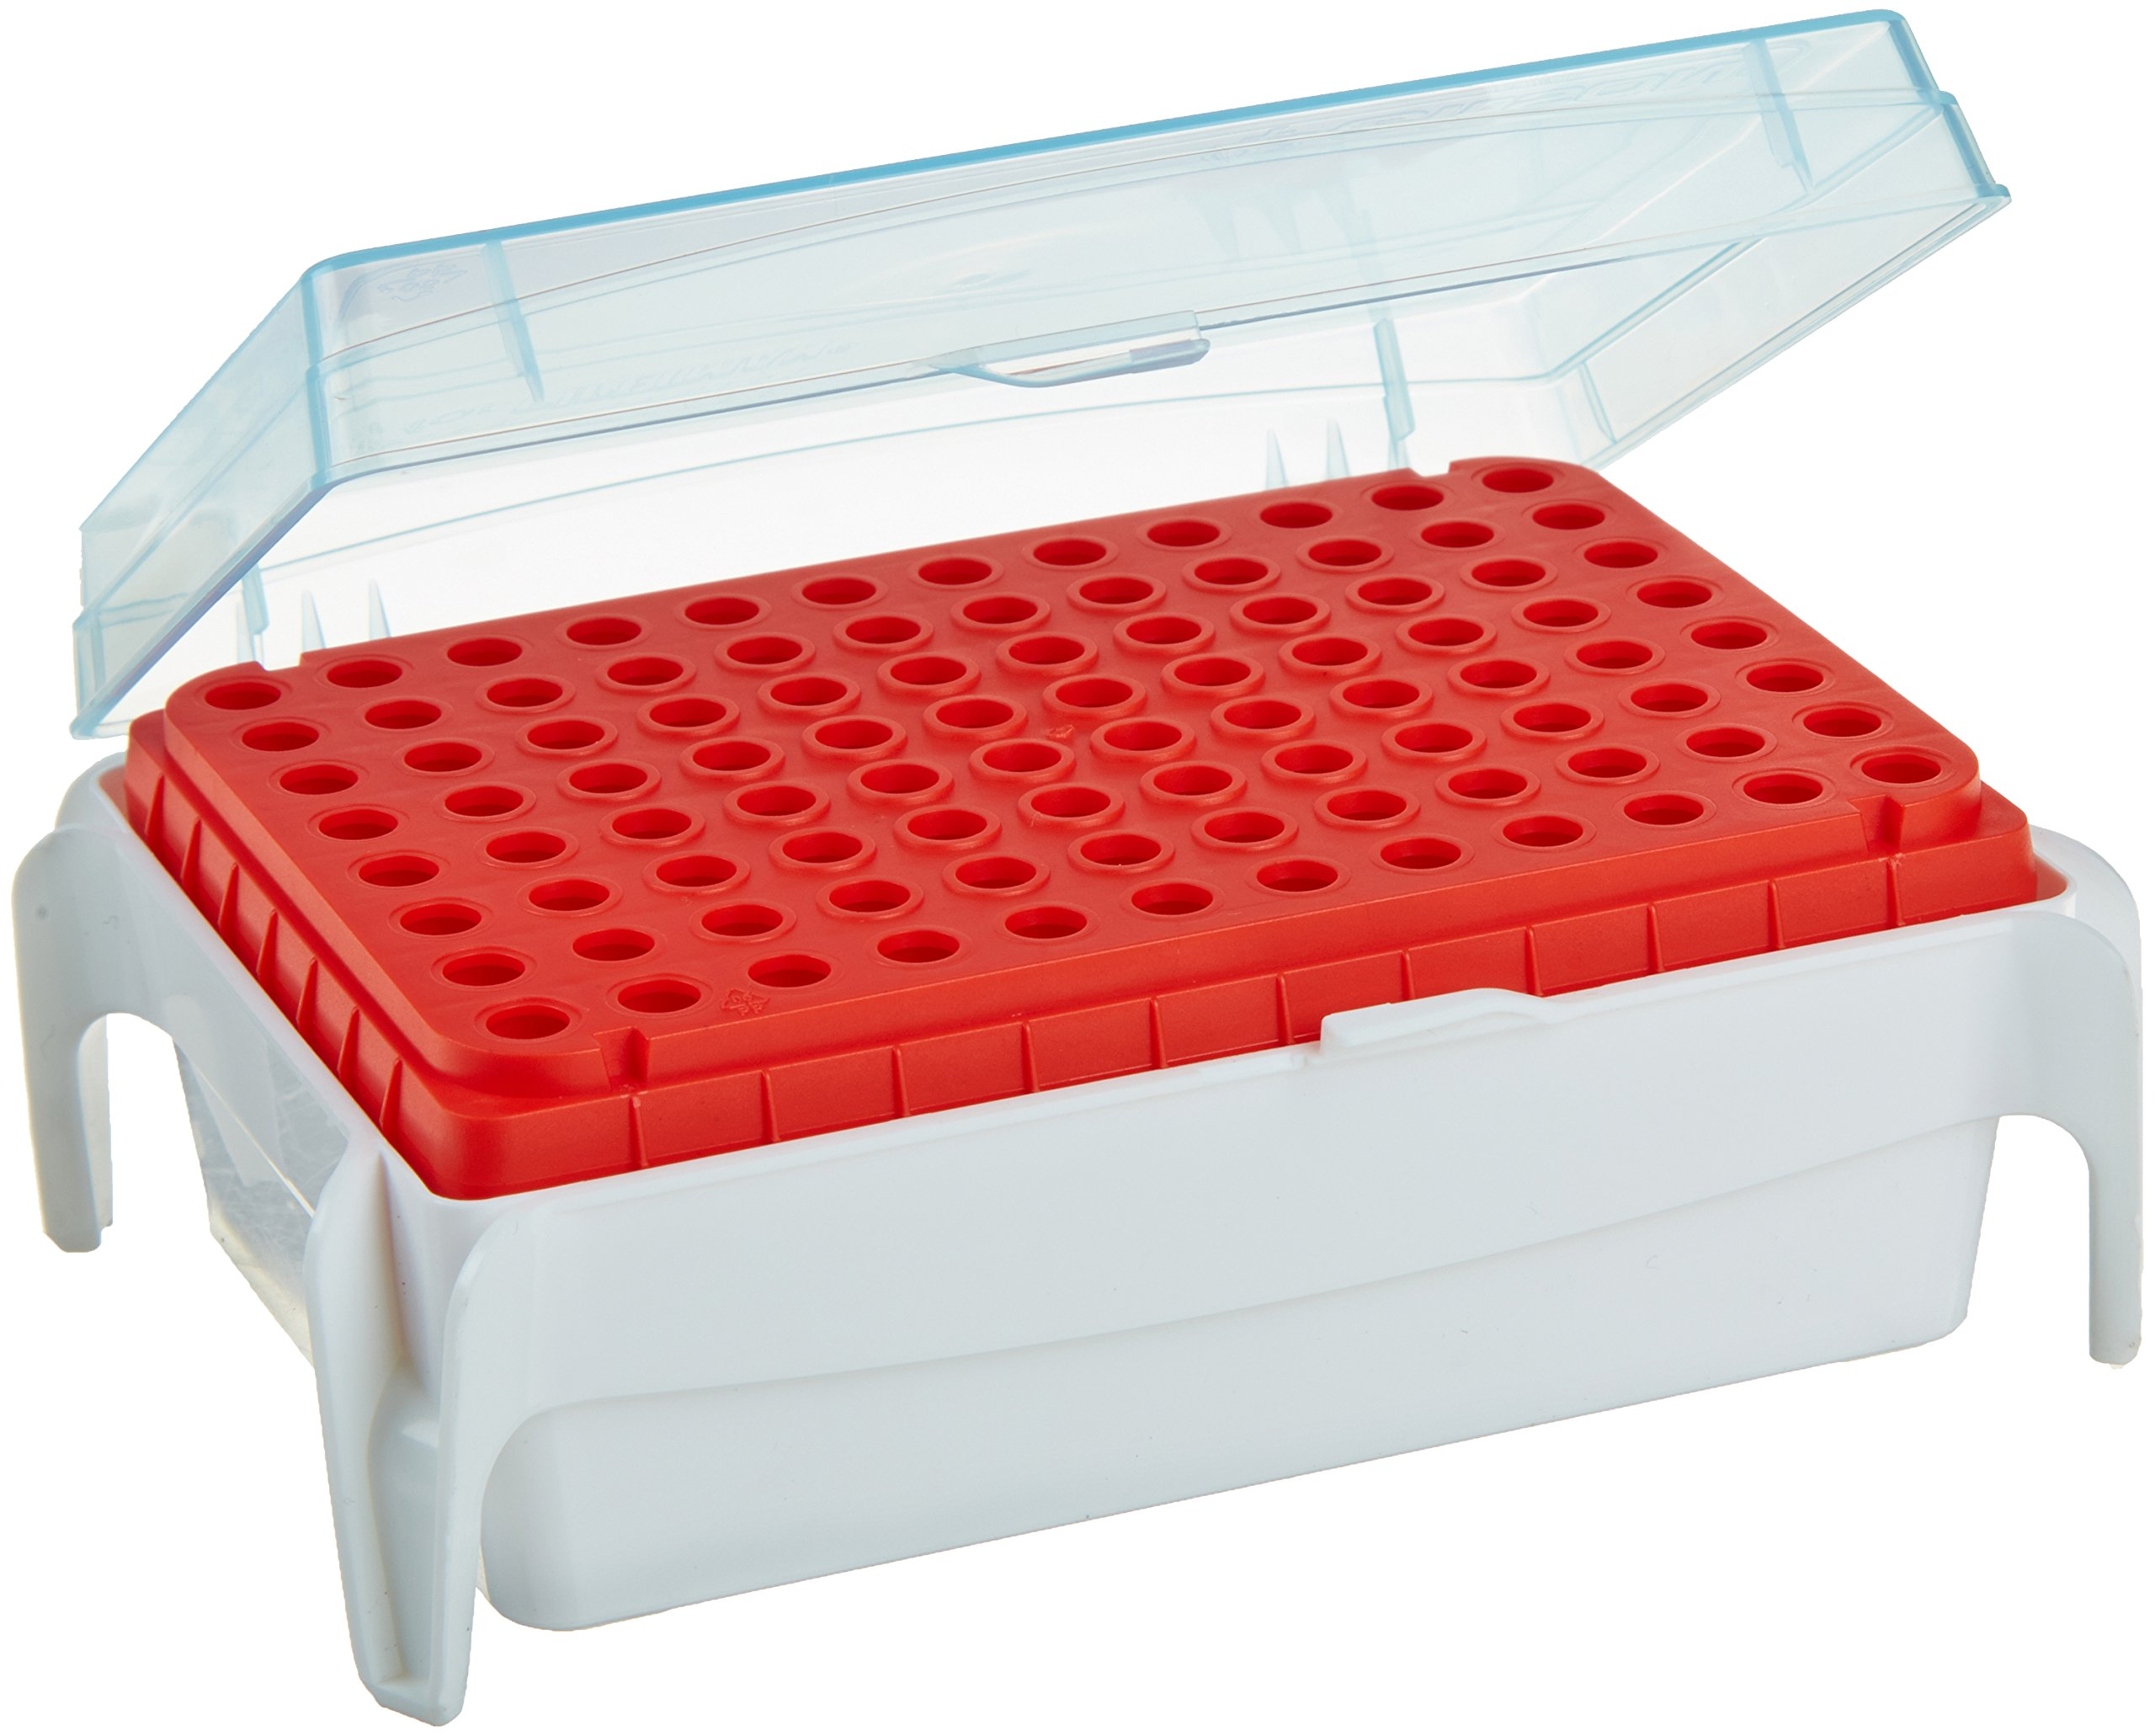 Gilson Pipetman F171102 Polypropylene Empty Tip Rack for 0.1-10µl Diamond Pipettor Tips (Set of 2)